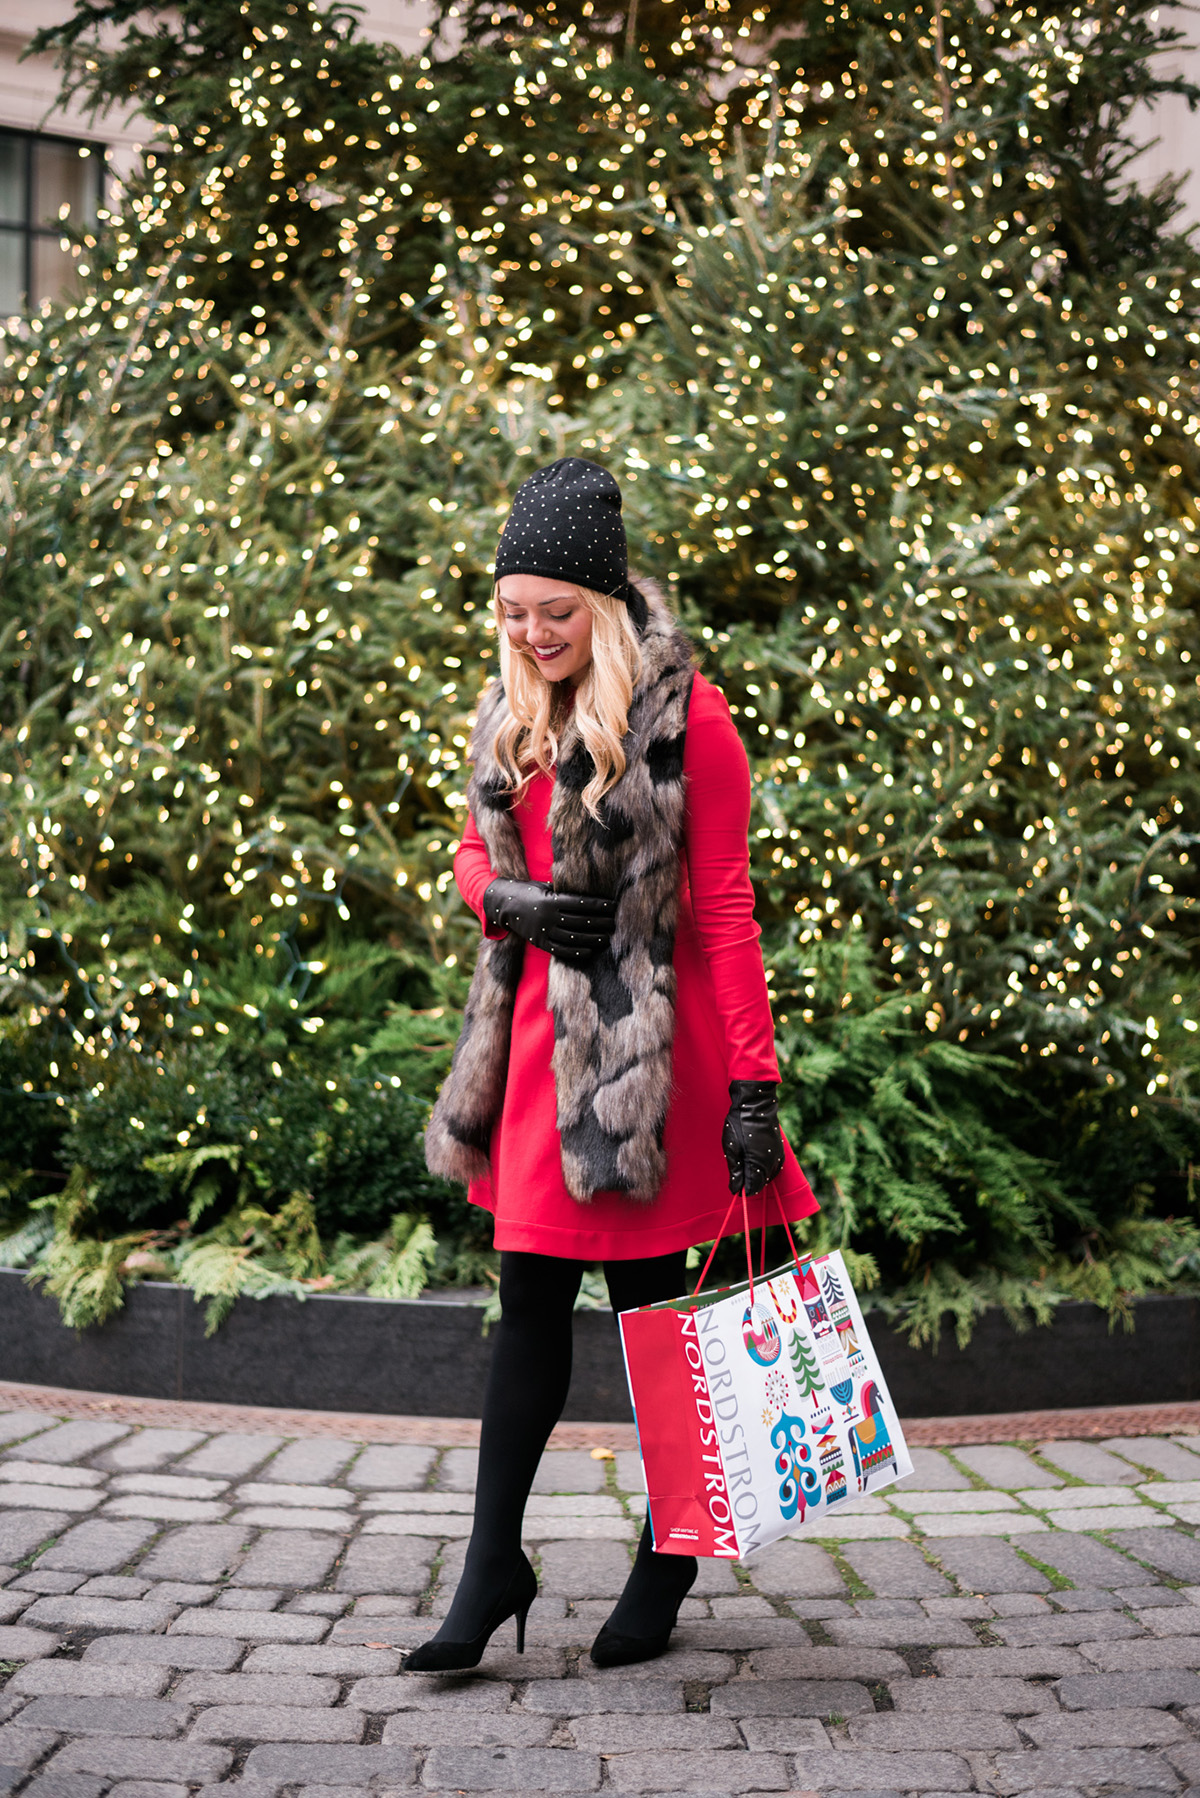 Jessica Sturdy shares the best Black Friday and Cyber Monday deals to shop this year!